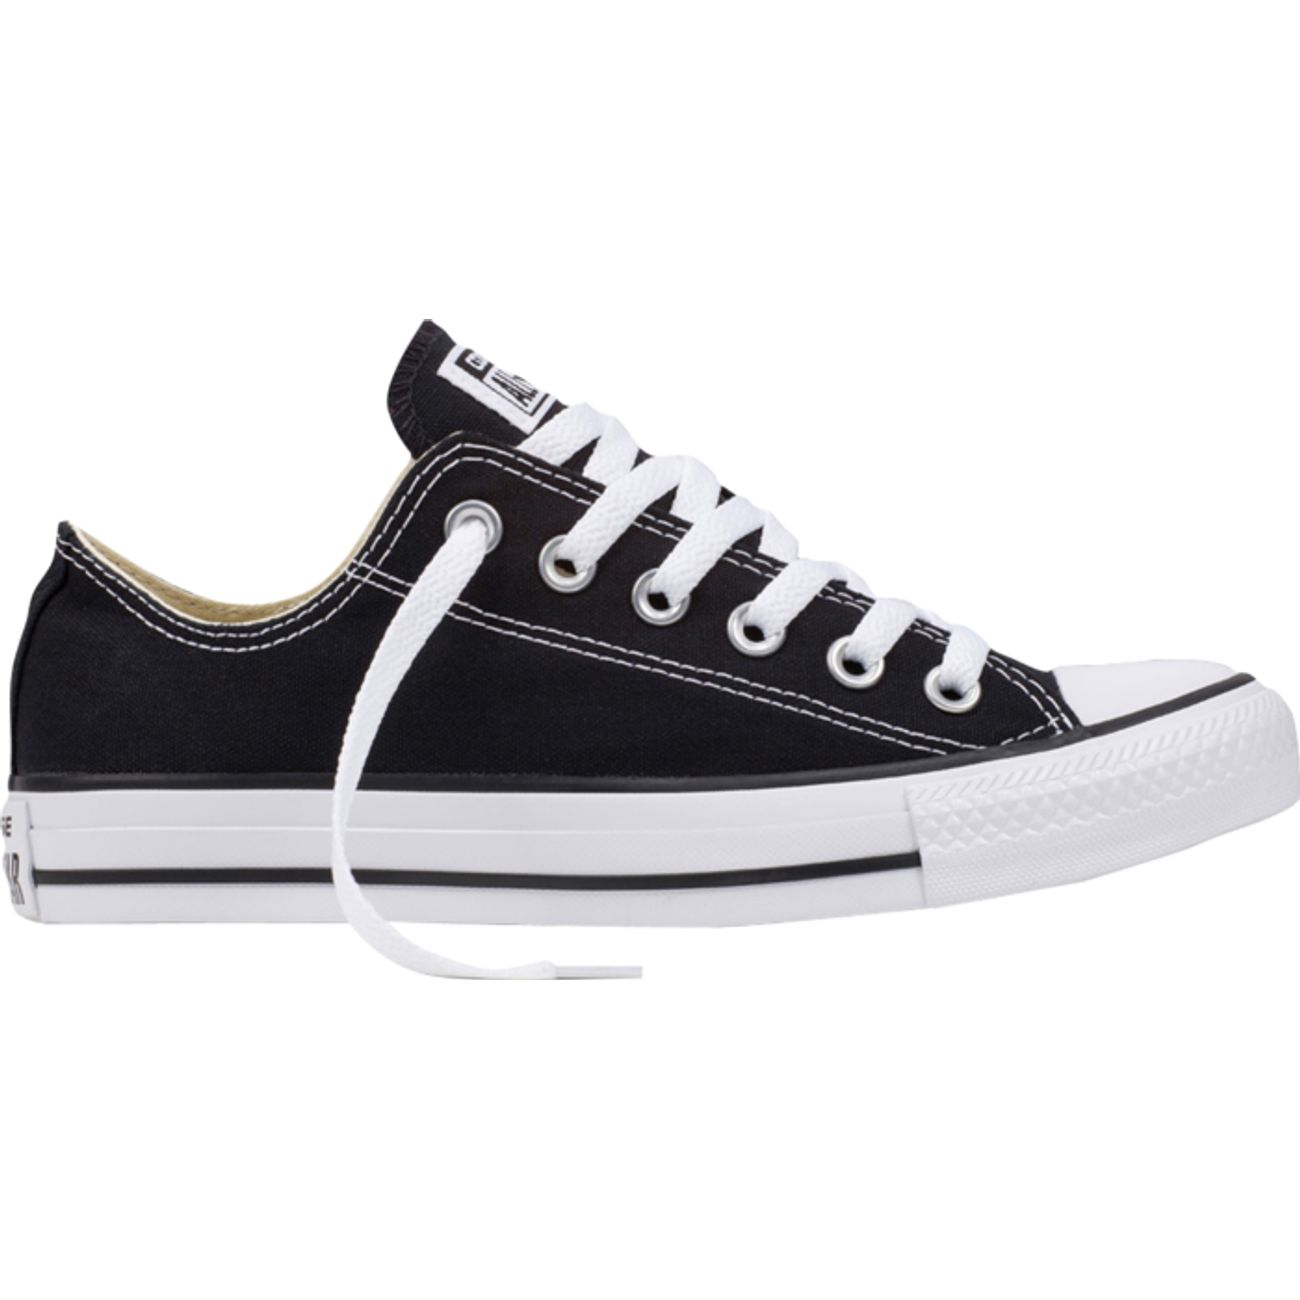 CHAUSSURES BASSES  homme CONVERSE CHUCK TAYLOR LOW